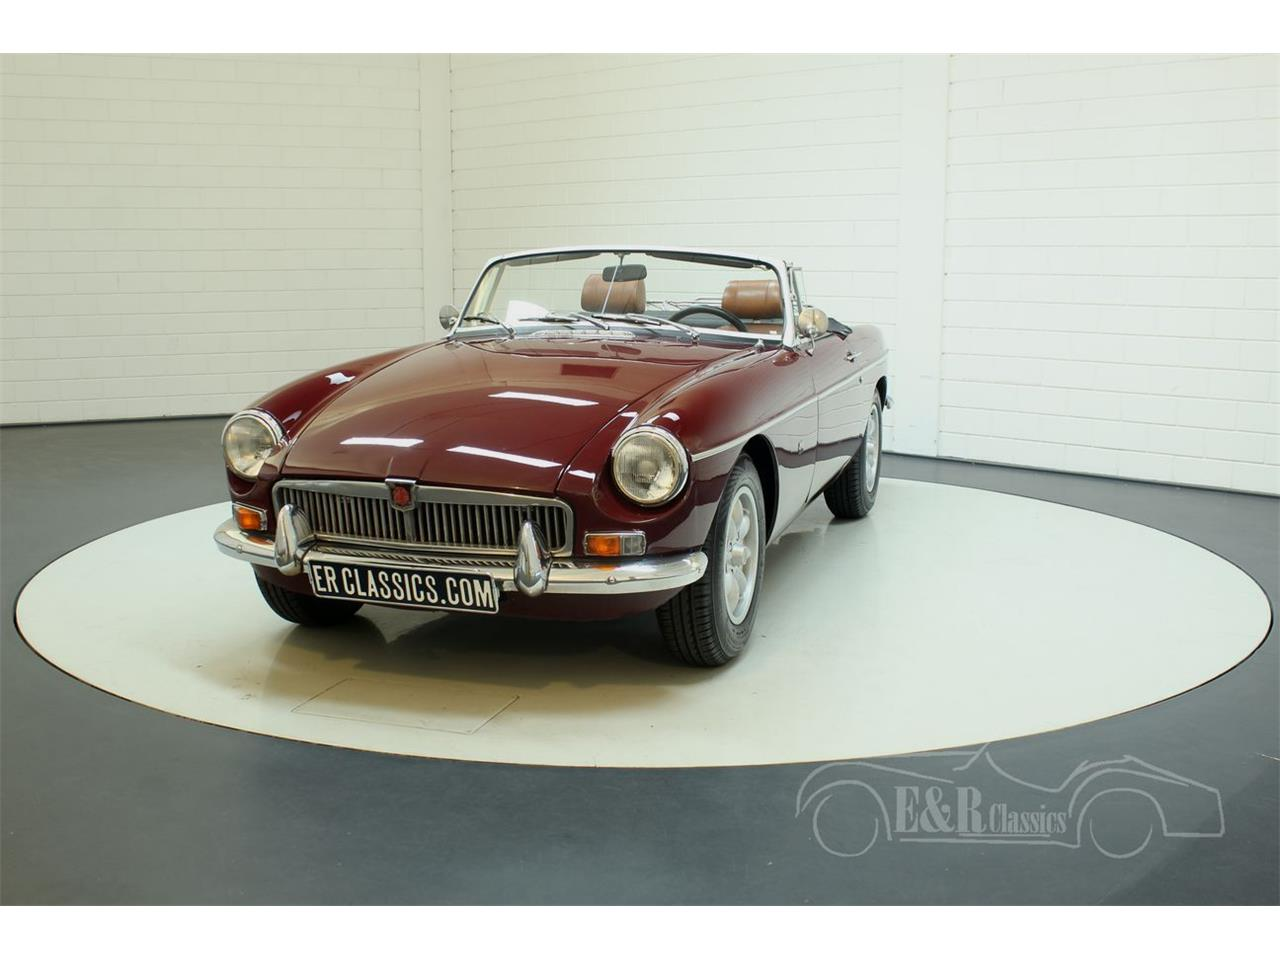 Large Picture of 1976 MG MGB located in Noord-Brabant - $22,250.00 - Q45I